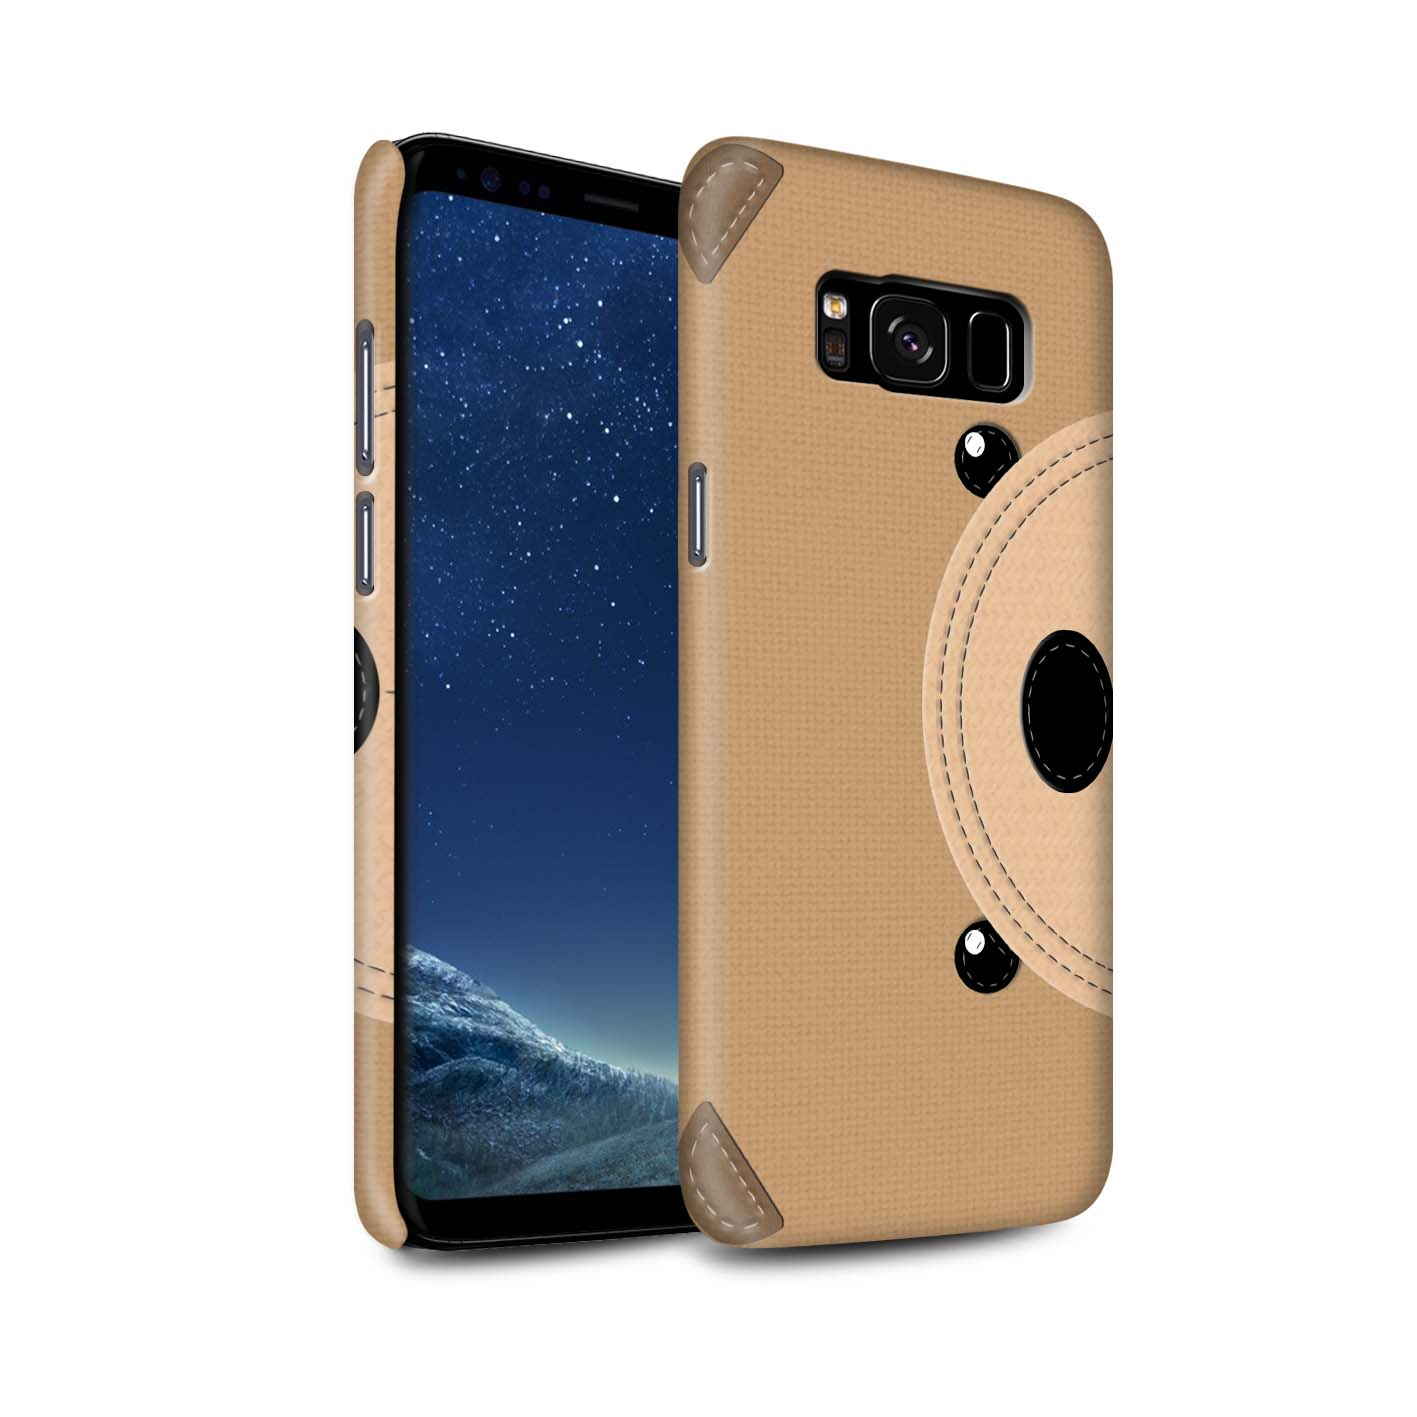 Matte-Phone-Case-for-Samsung-Galaxy-S8-G950-Animal-Stitch-Effect thumbnail 8